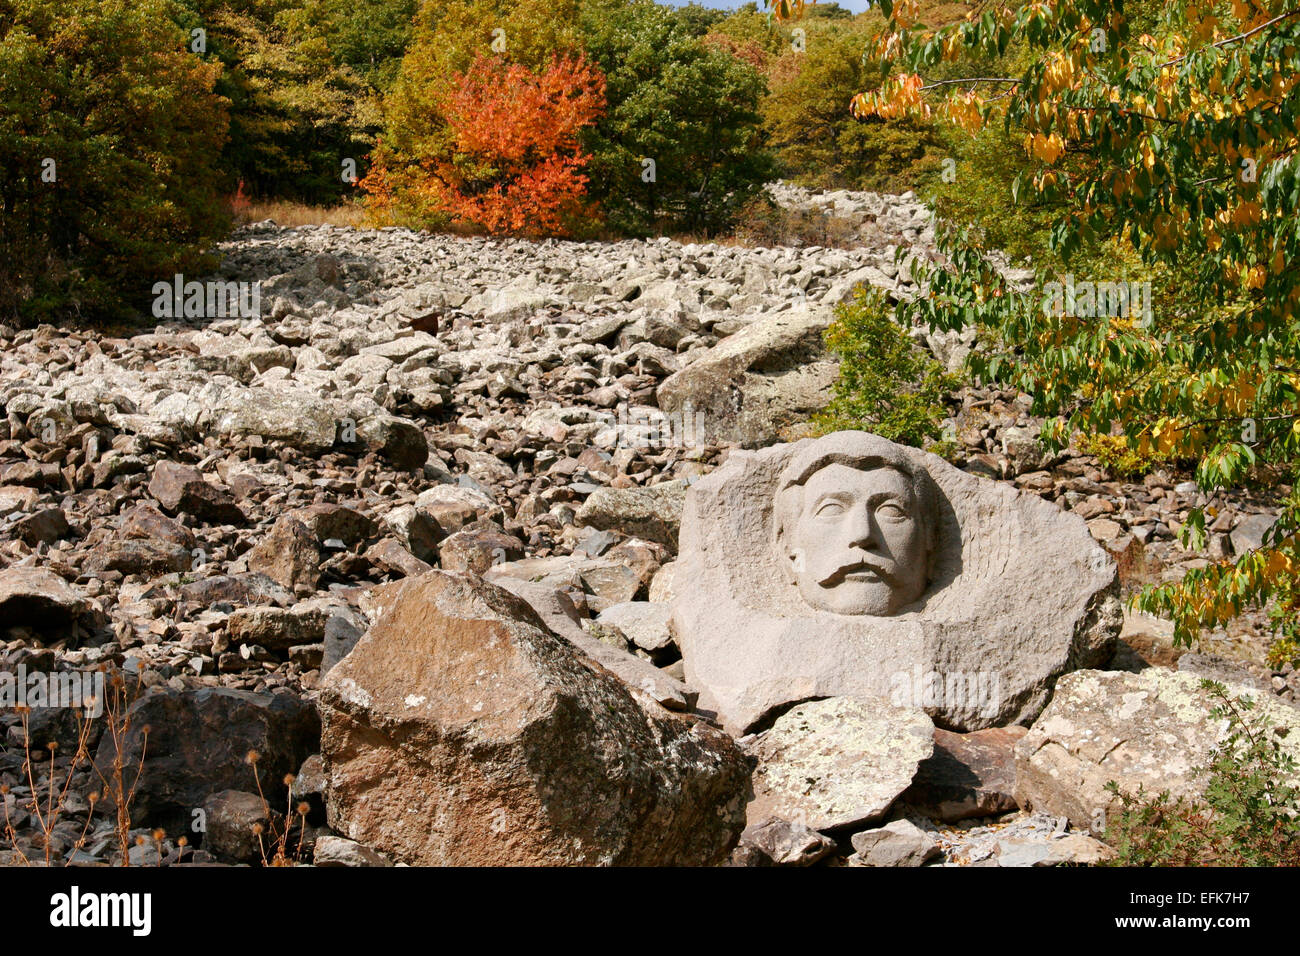 Carved stone image in the park of the resort town of Jermuk, Armenia